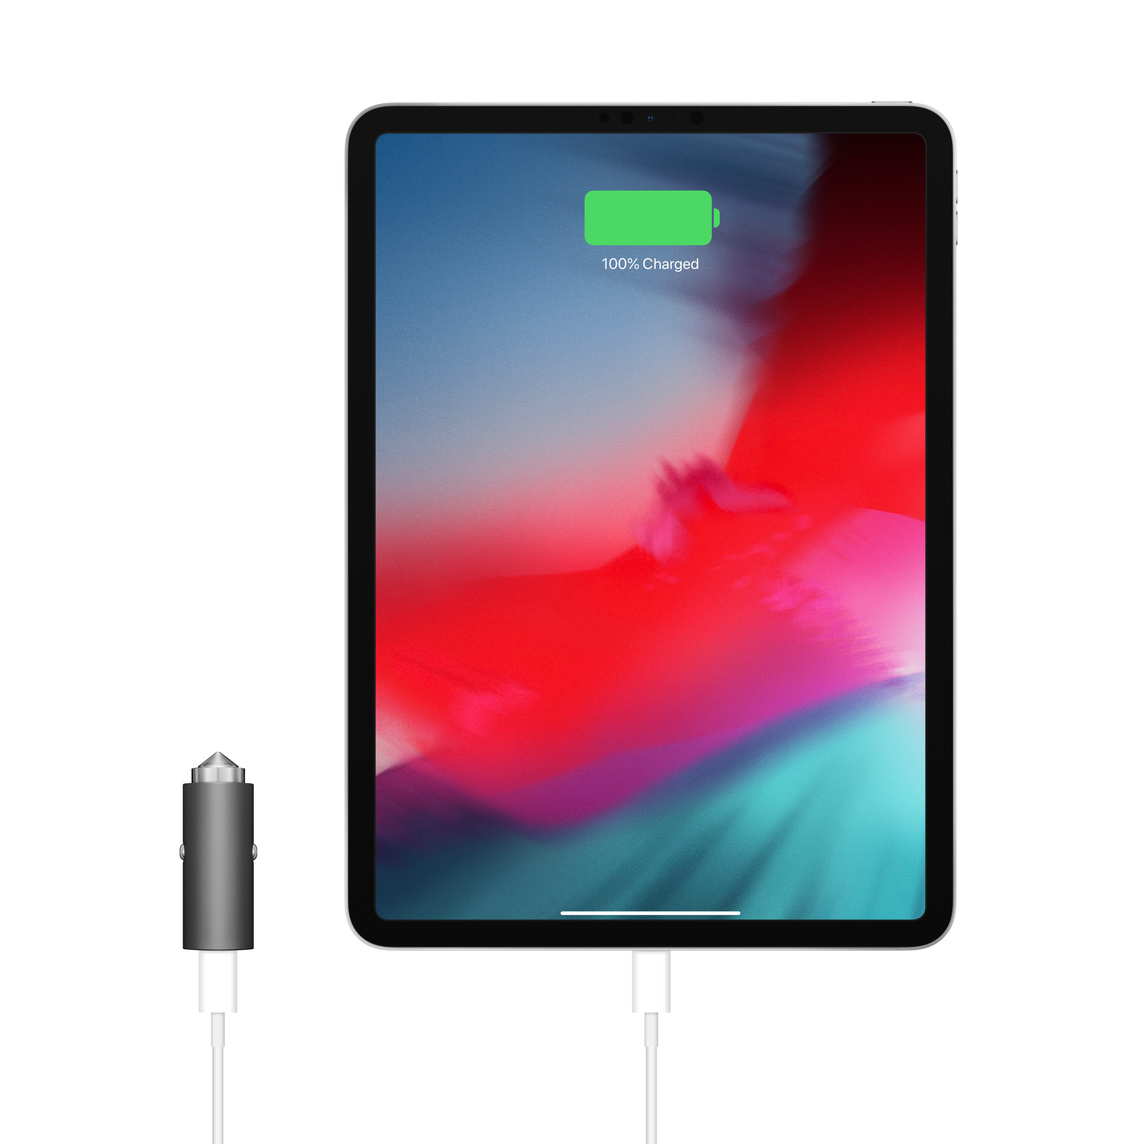 Mophie Usb C Car Charger Apple The funxim dual wireless charger. mophie usb c car charger